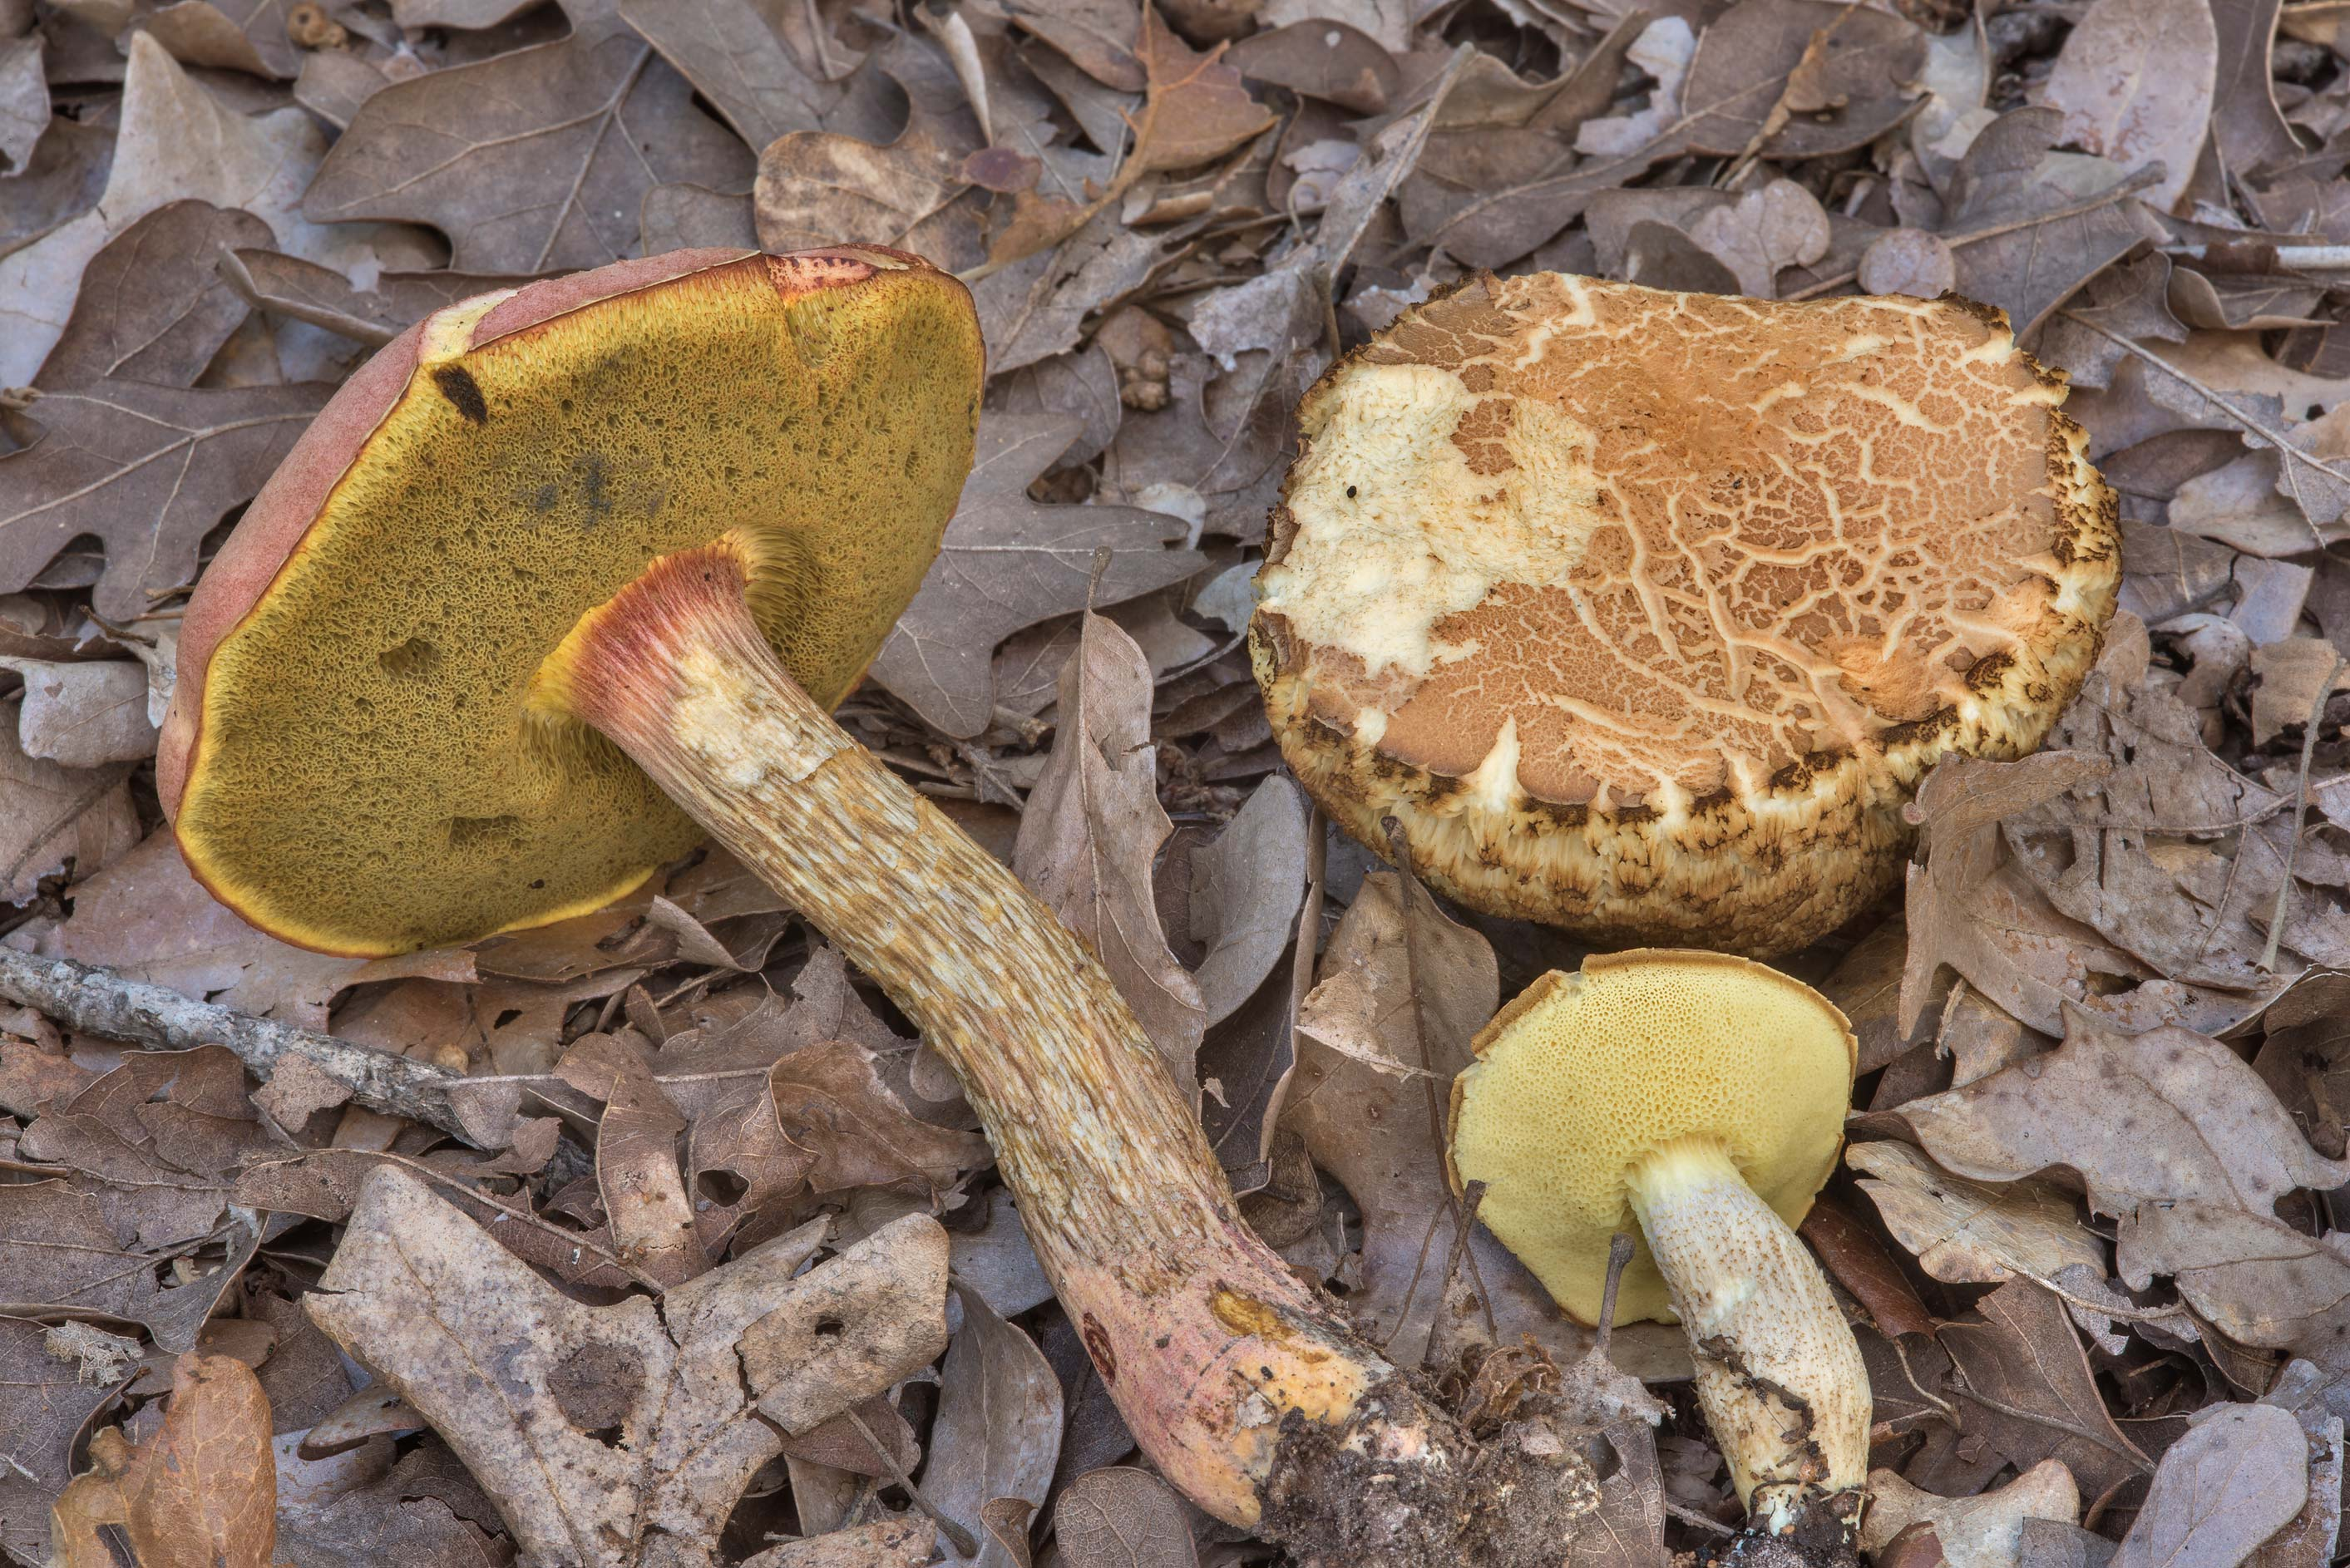 Pulchroboletus and other bolete mushrooms in Lick Creek Park. College Station, Texas